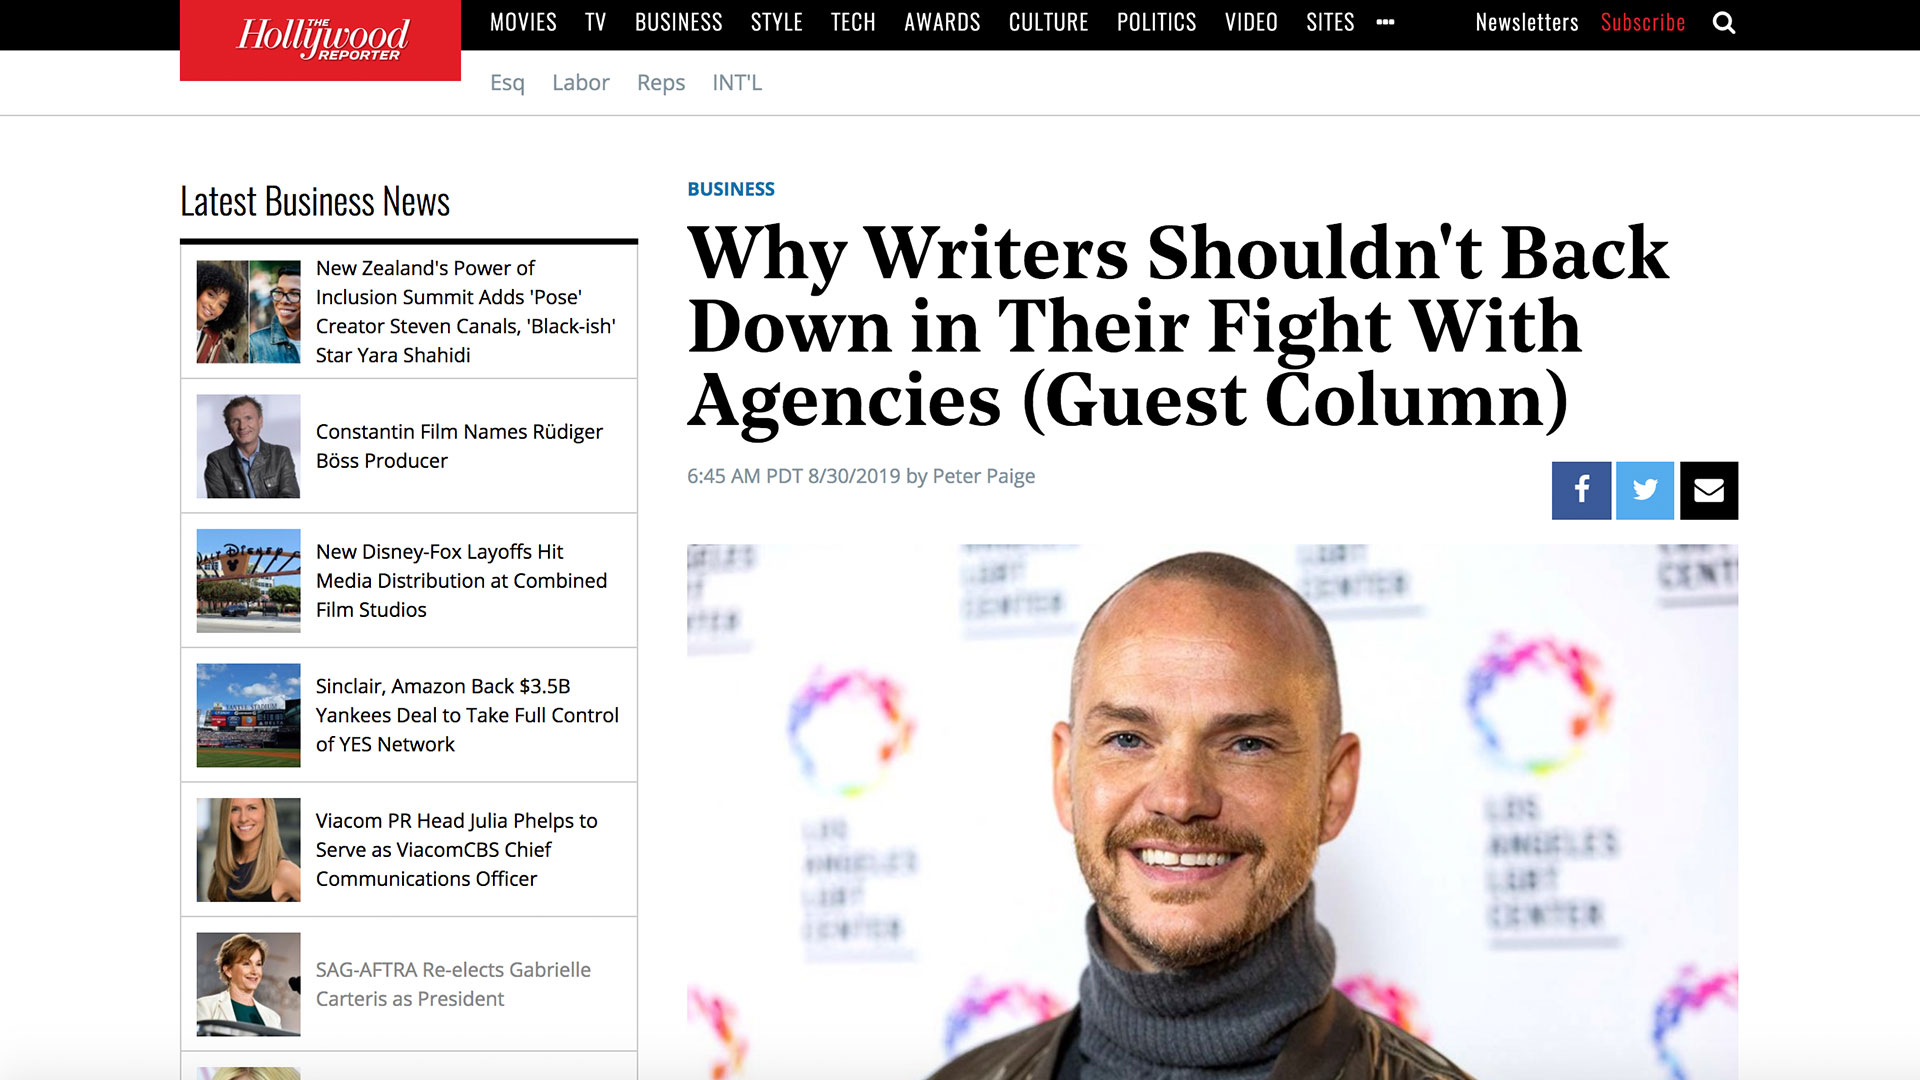 Fairness Rocks News Why Writers Shouldn't Back Down in Their Fight With Agencies (Guest Column)